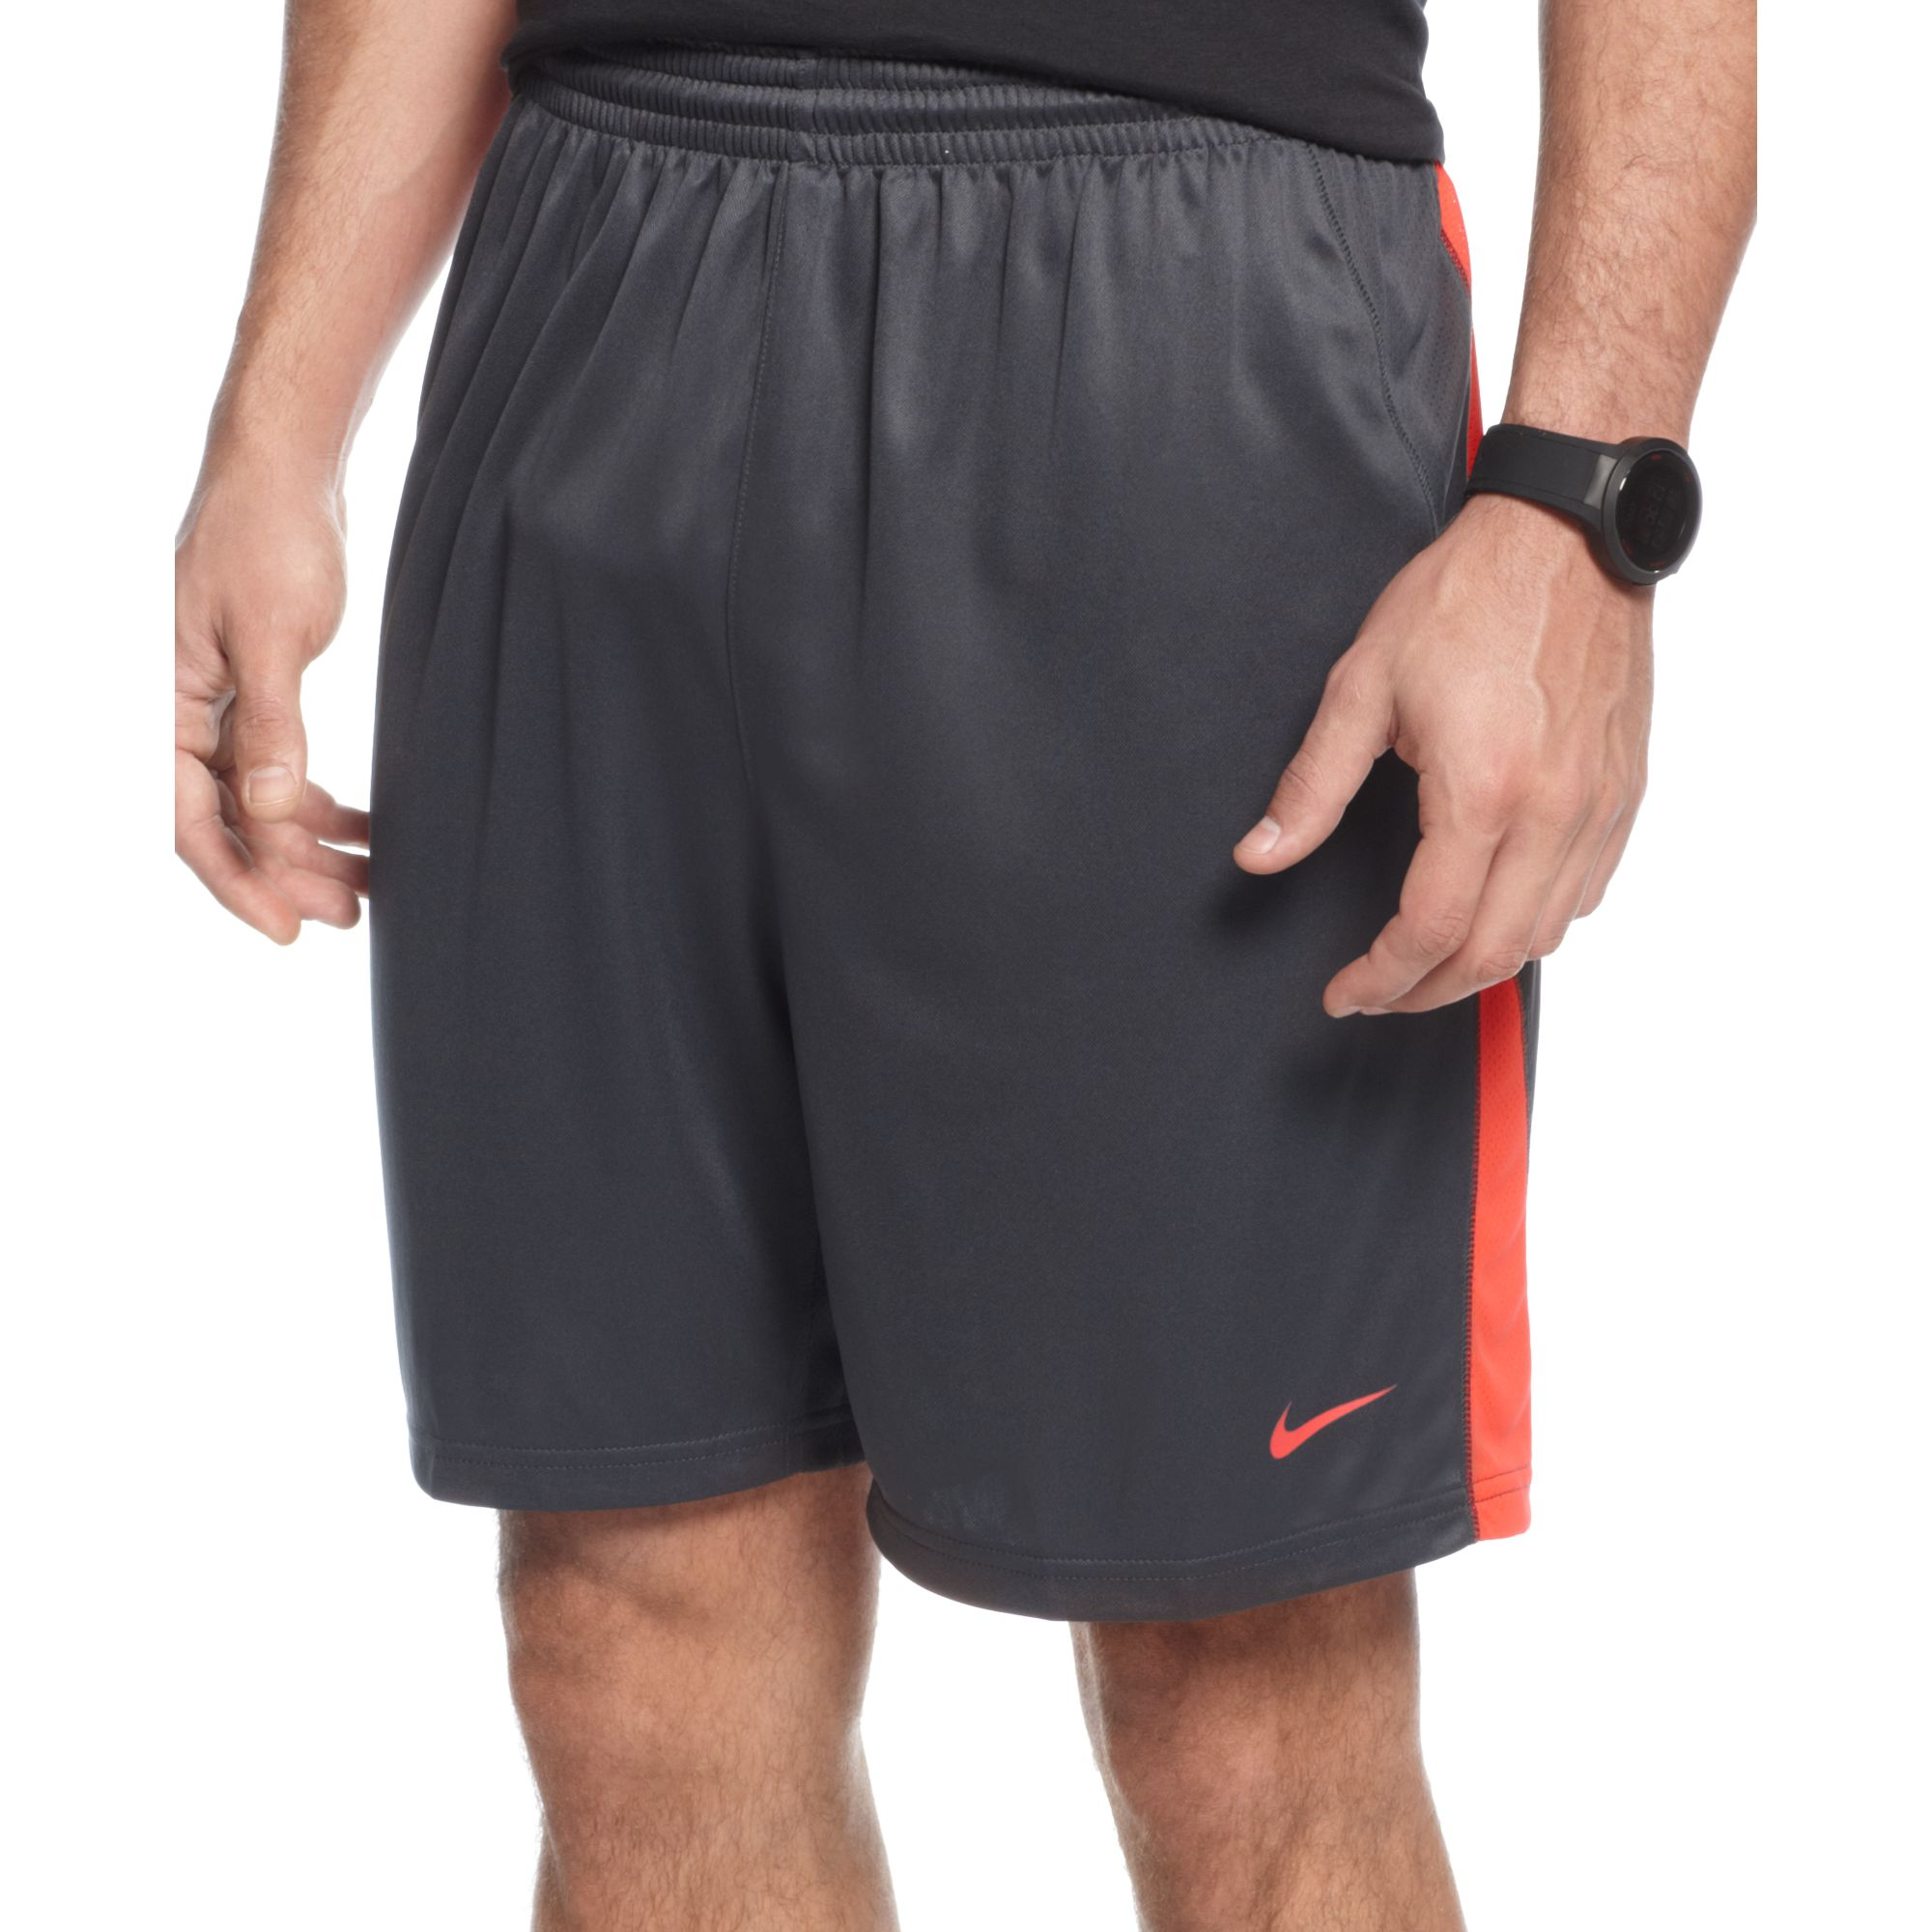 Lyst - Nike Trequartista Soccer Shorts in Gray for Men